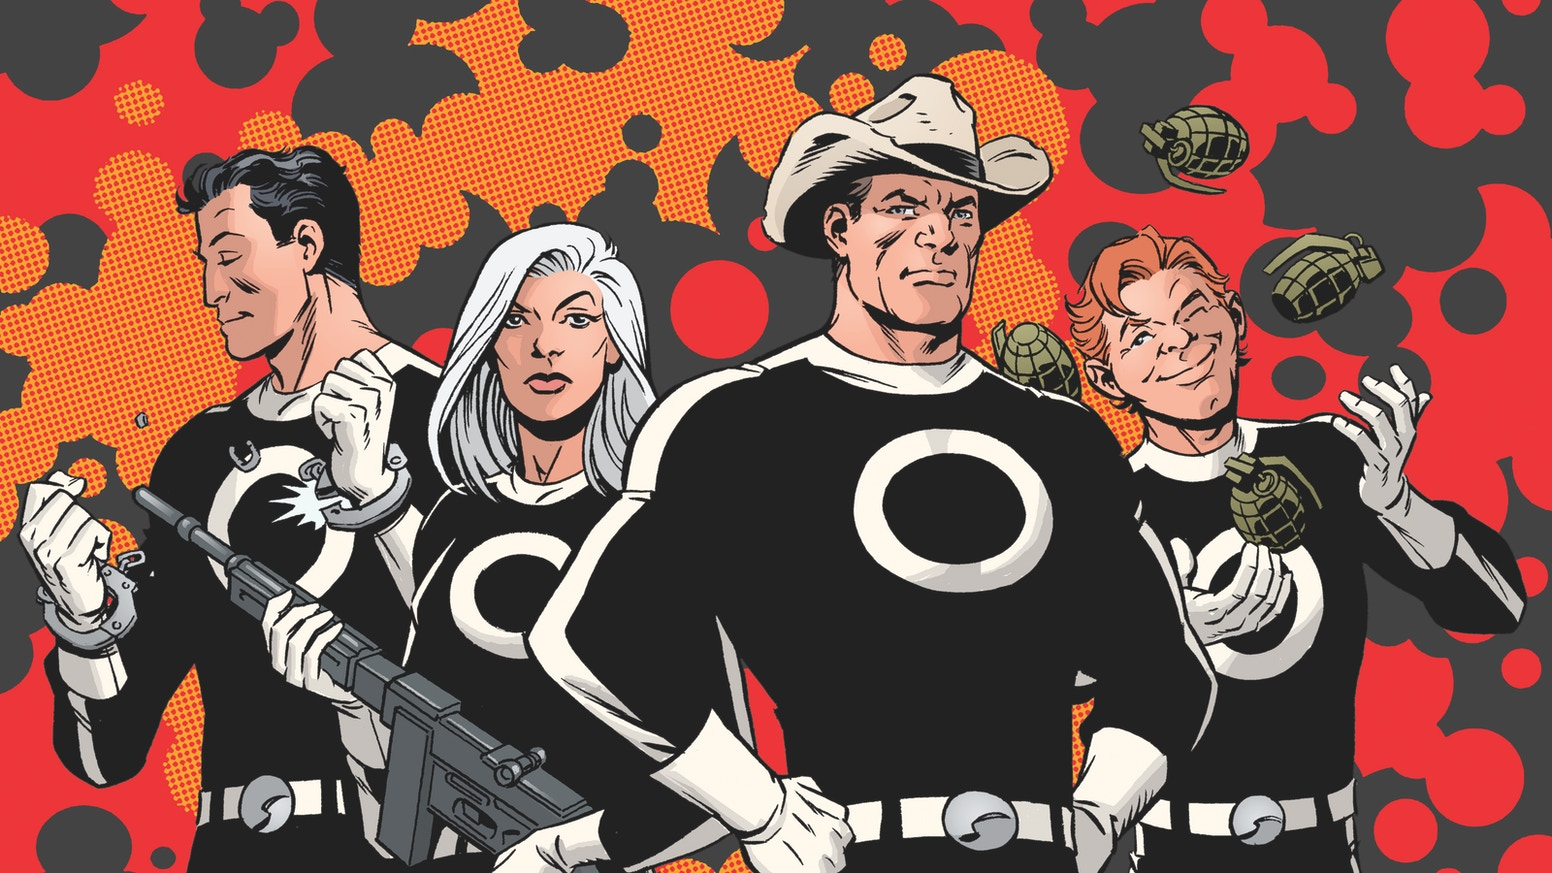 ATOMIC MUTATIONS! FLYING SAUCERS! COMMIES! Karl Kesel & Tom Grummett's SECTION ZERO returns— in an ALL NEW graphic novel set in 1959!